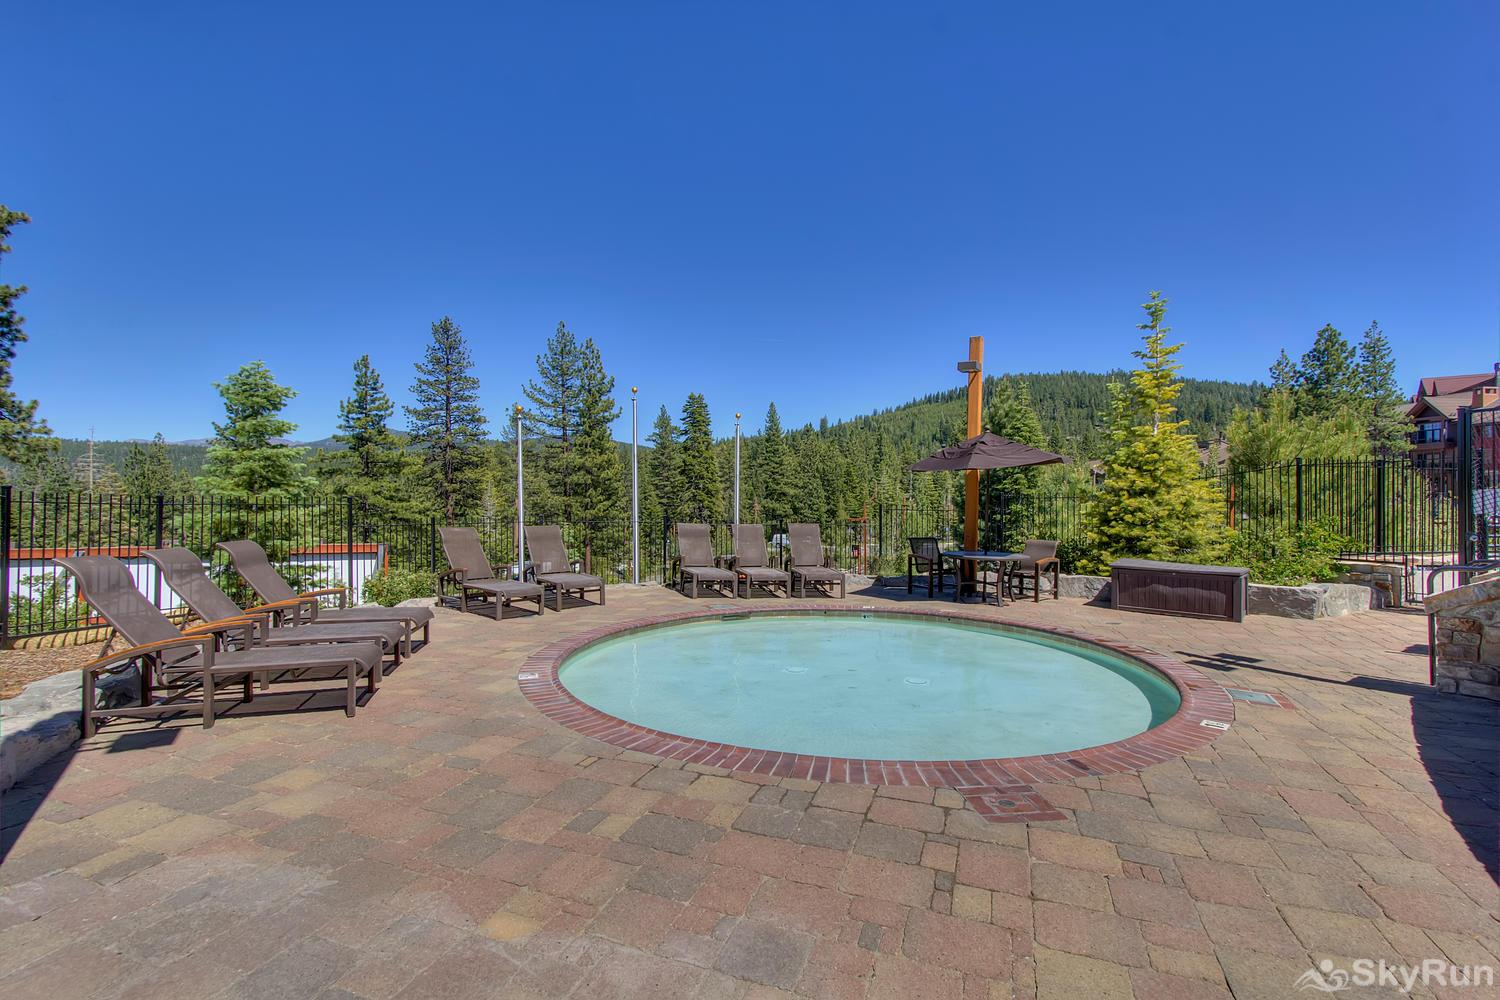 Sierra Range Northstar Lodge Luxury Condo Village Swim and Fitness Center